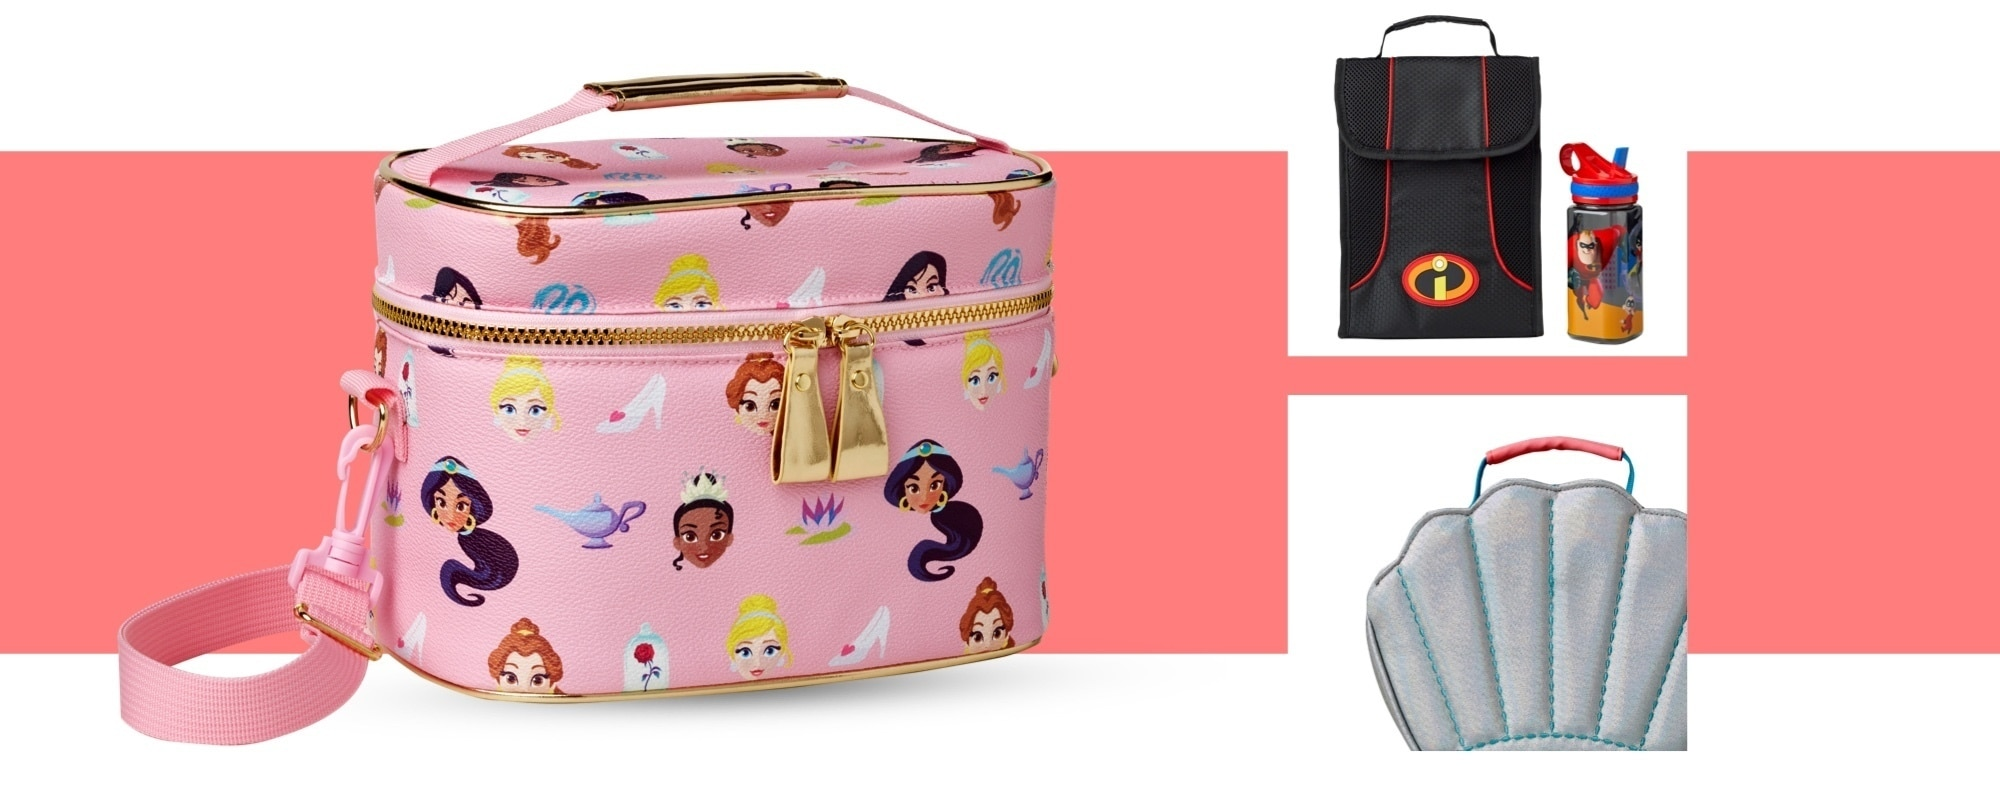 Disney Princess lunch case, Incredibles 2 lunch bag, Little Mermaid lunch bag